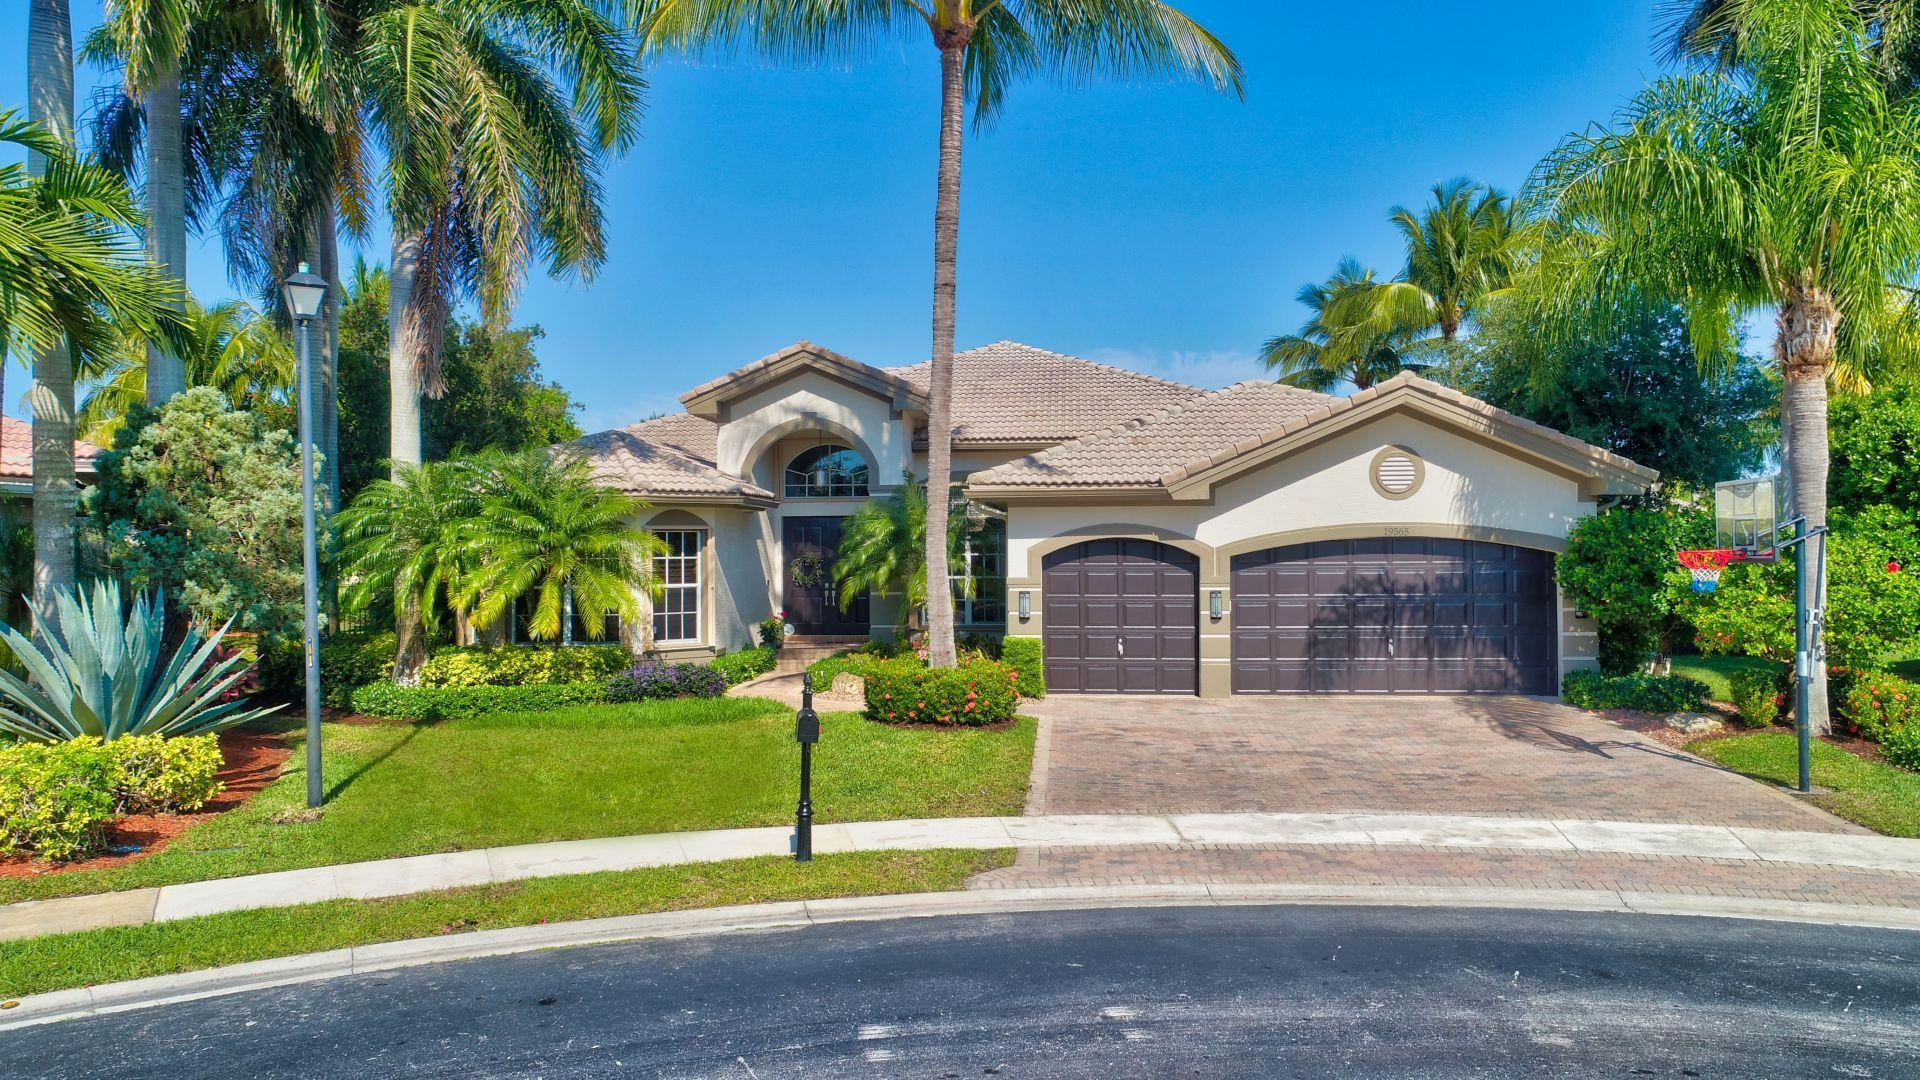 Photo of 19565 Havensway Court, Boca Raton, FL 33498